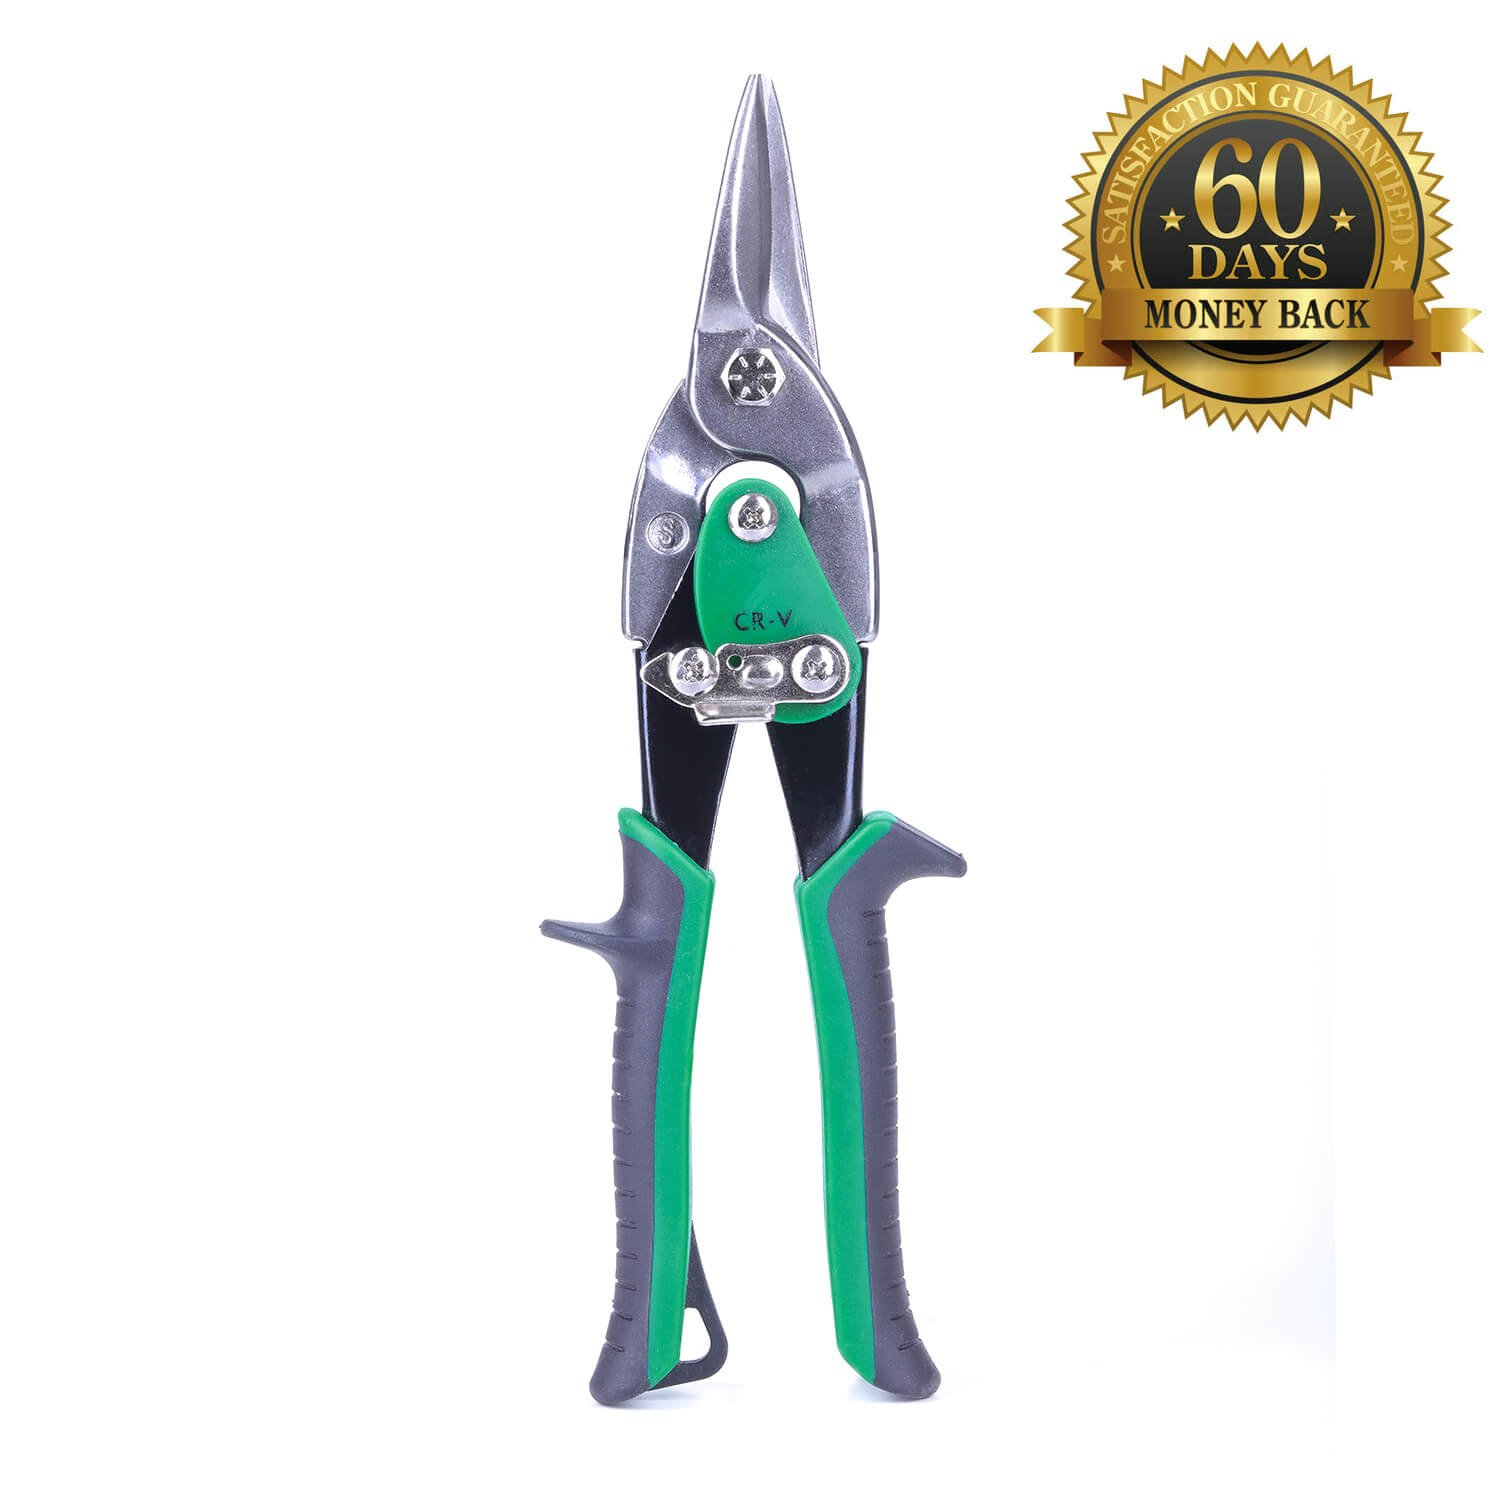 10inch Tin Aviation Snips – Straight Cut